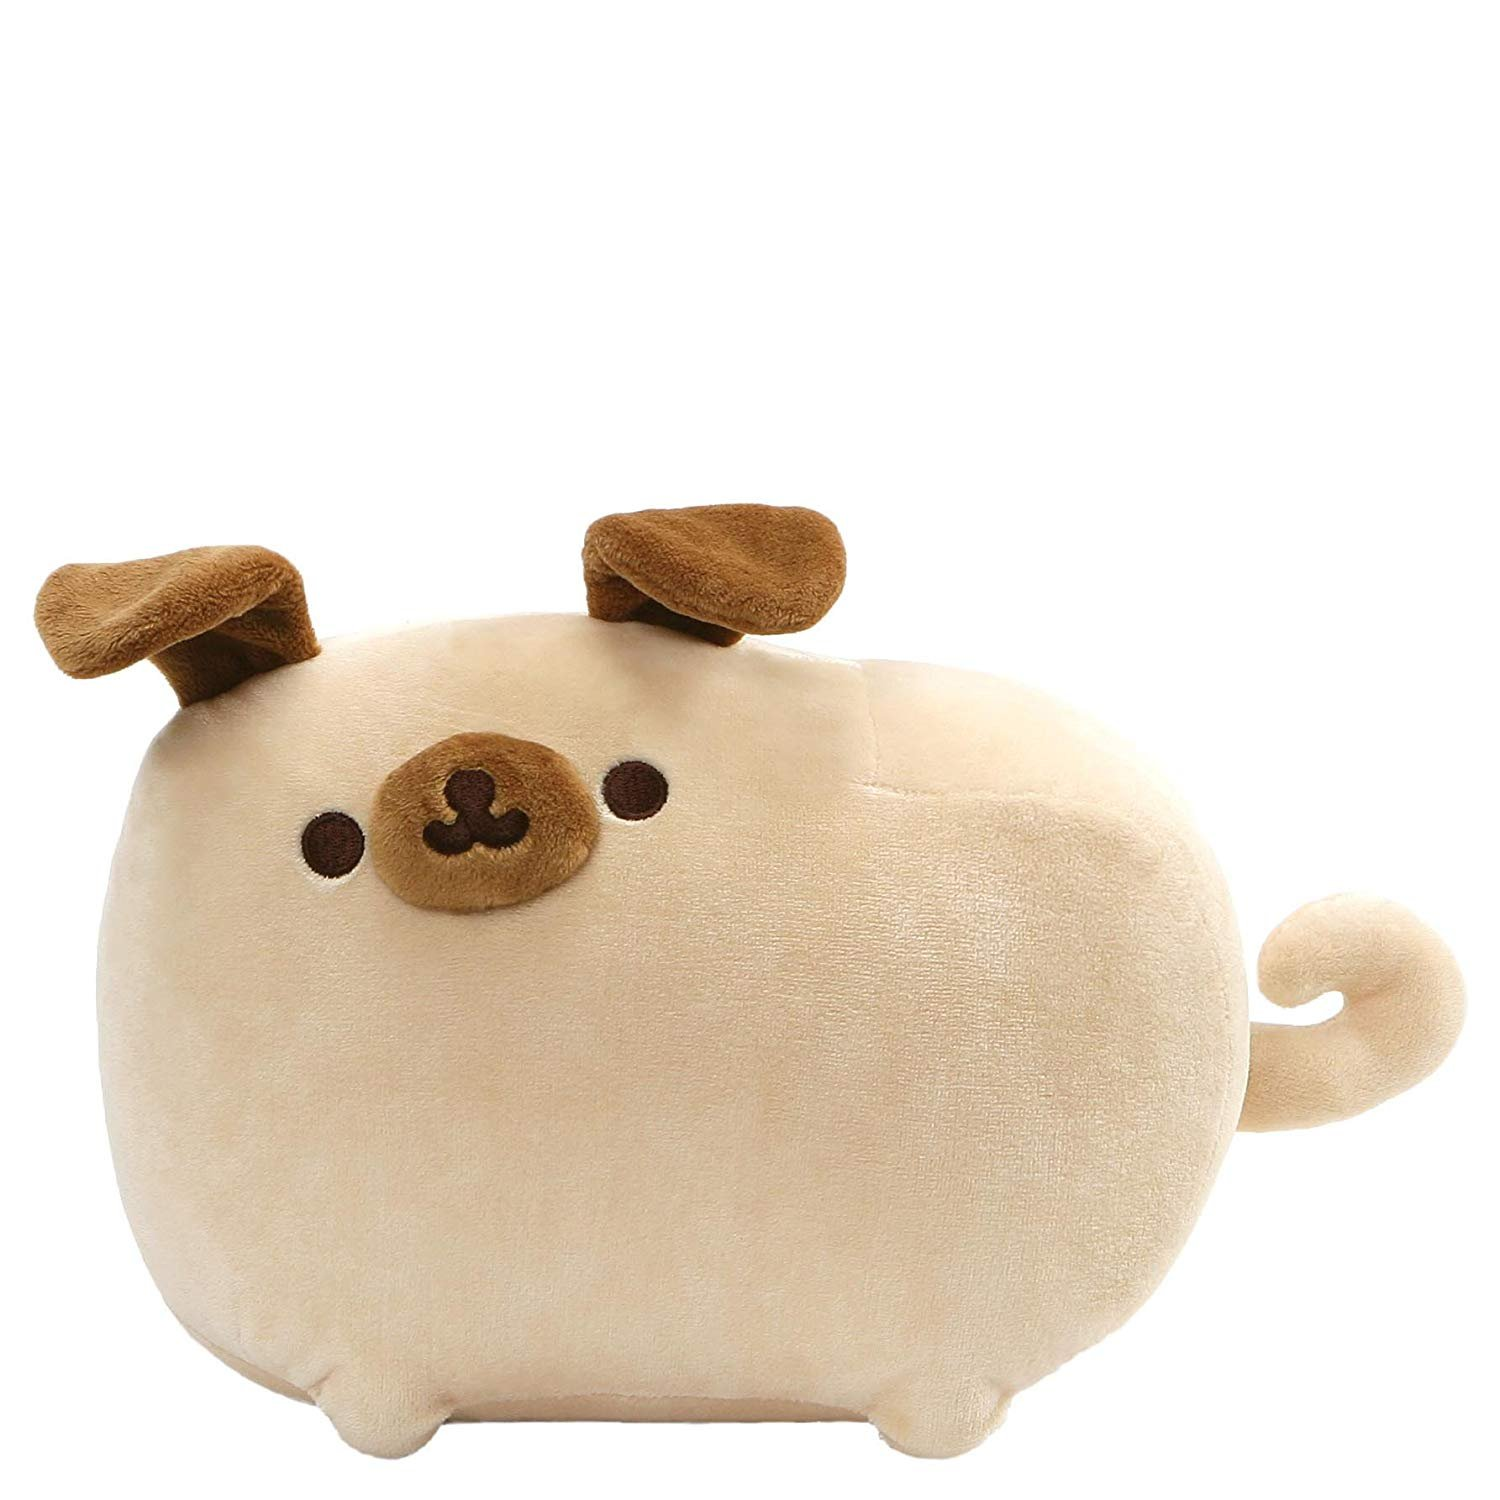 GUND Pusheen Pugsheen Dog Plush Stuffed Animal